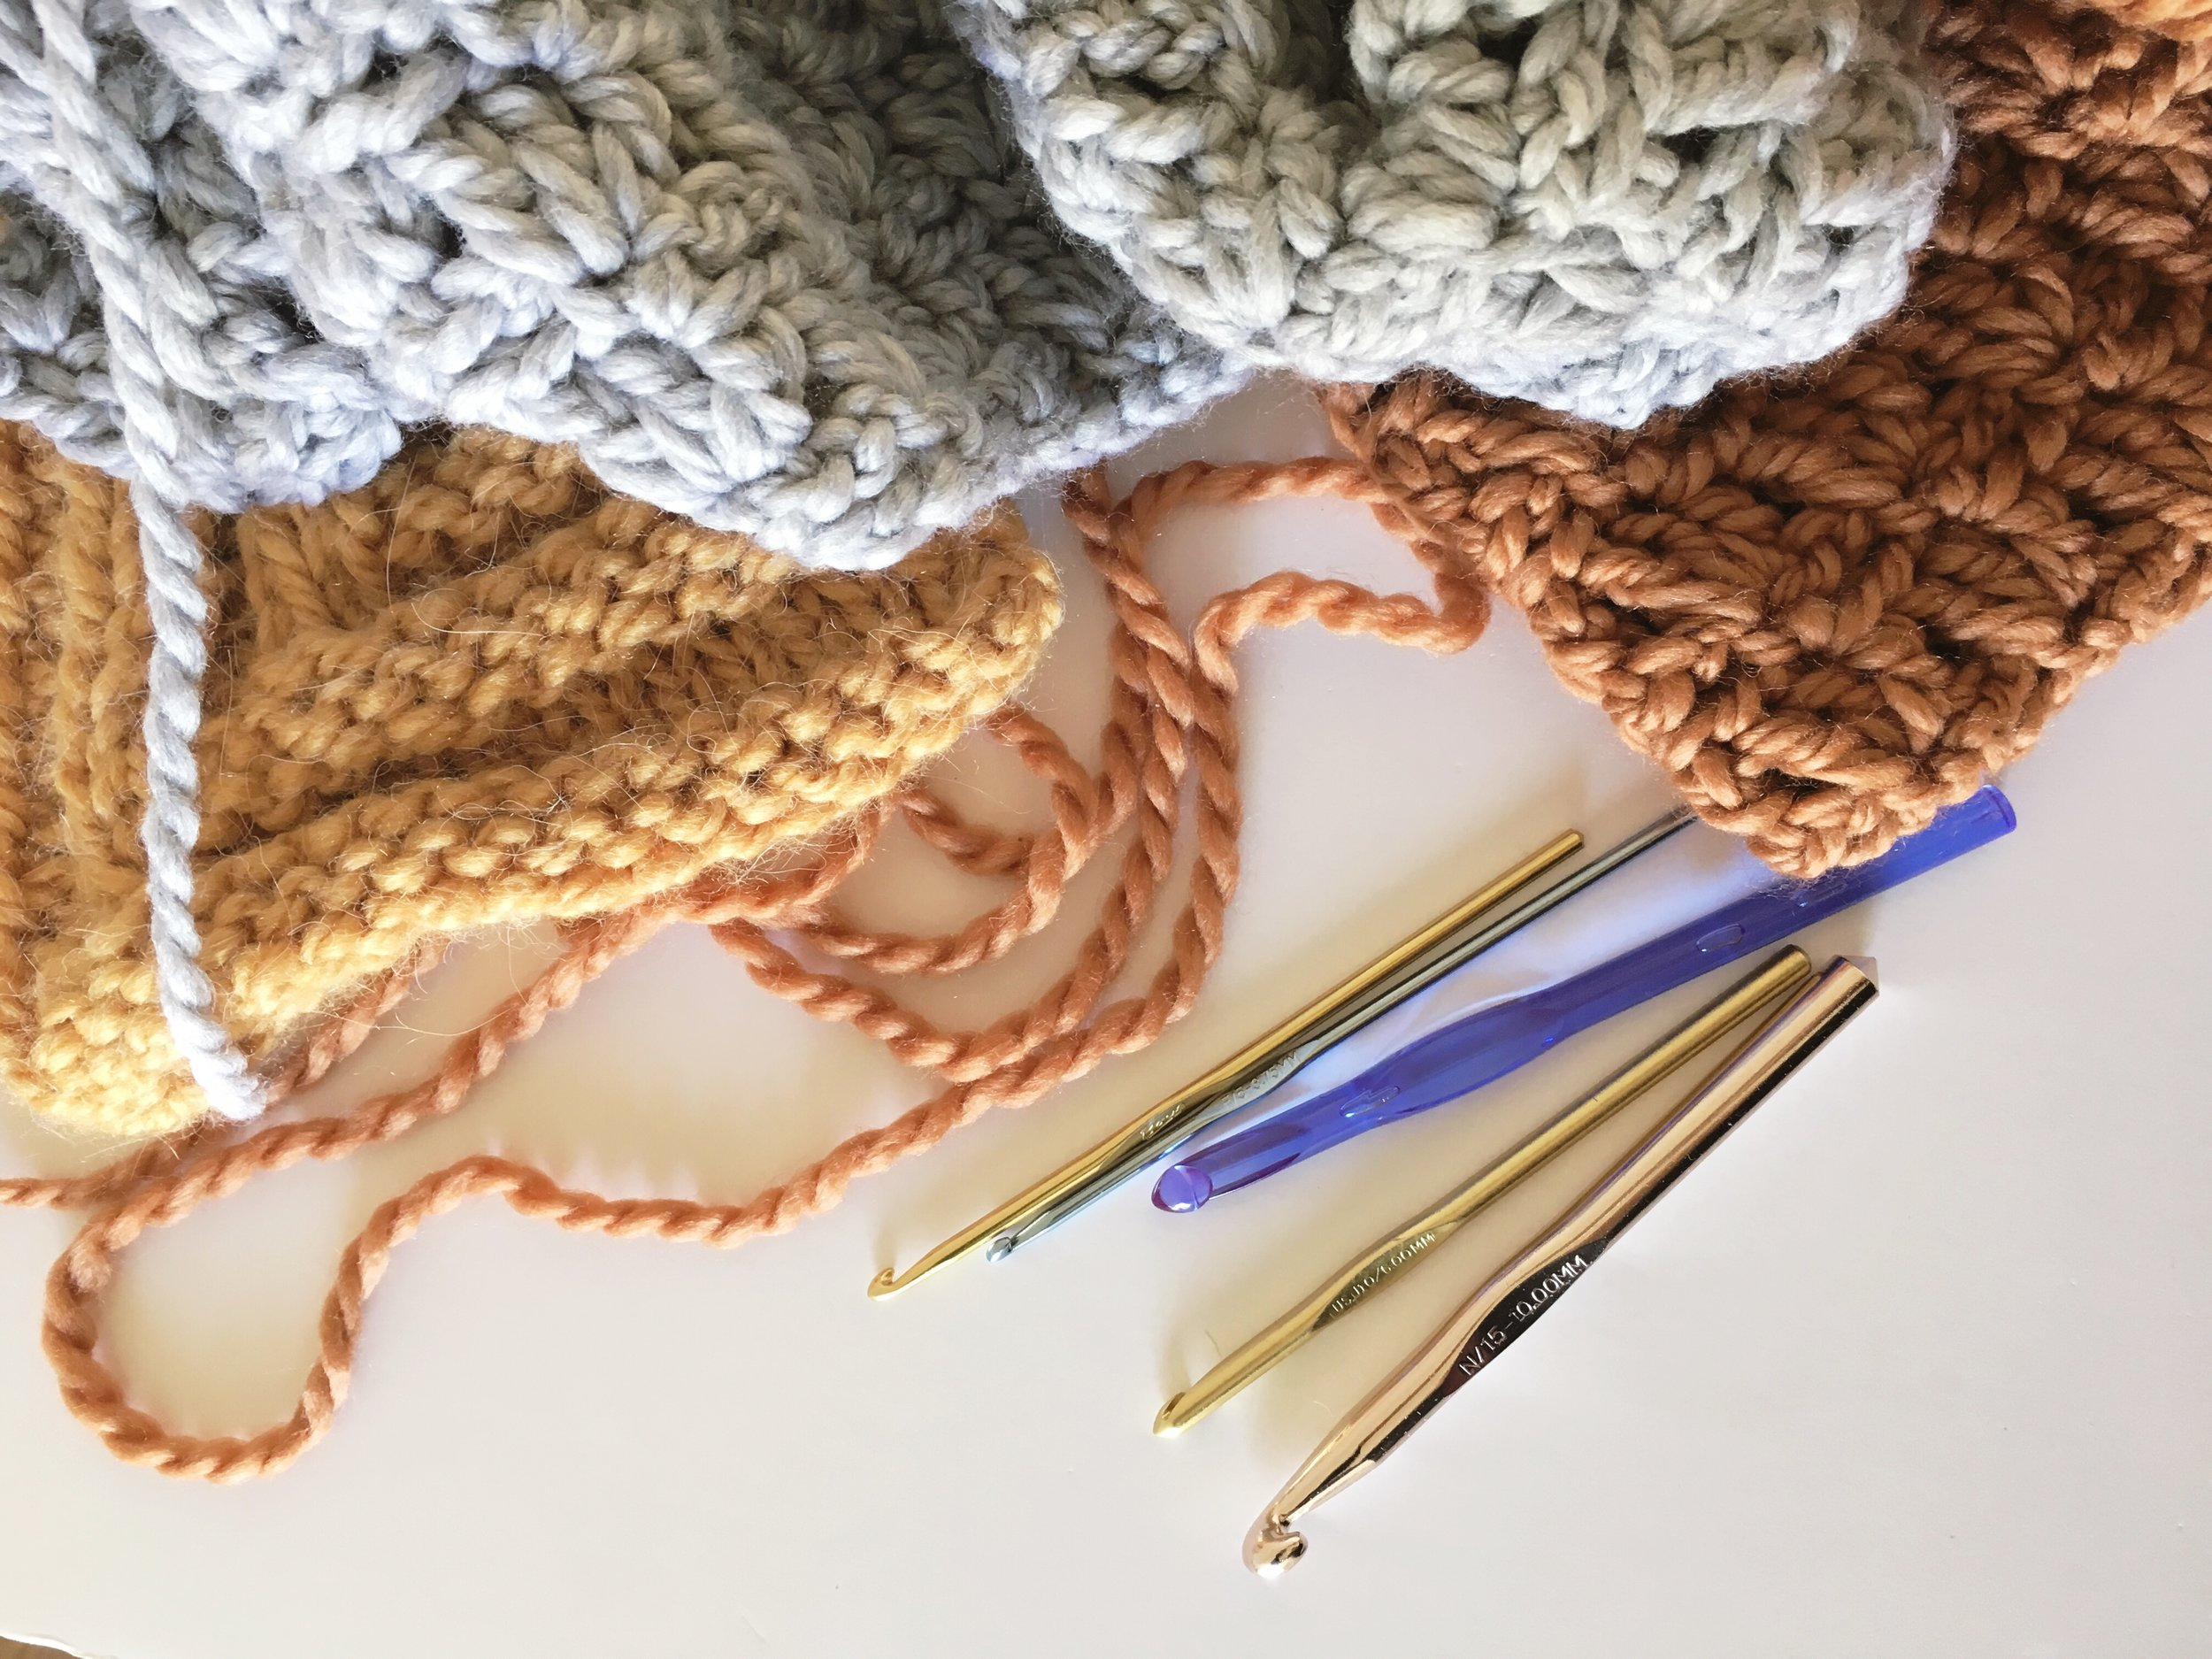 Crochet Lessons, how to read a yarn label and how to do a slip knot by bluecorduroy.com